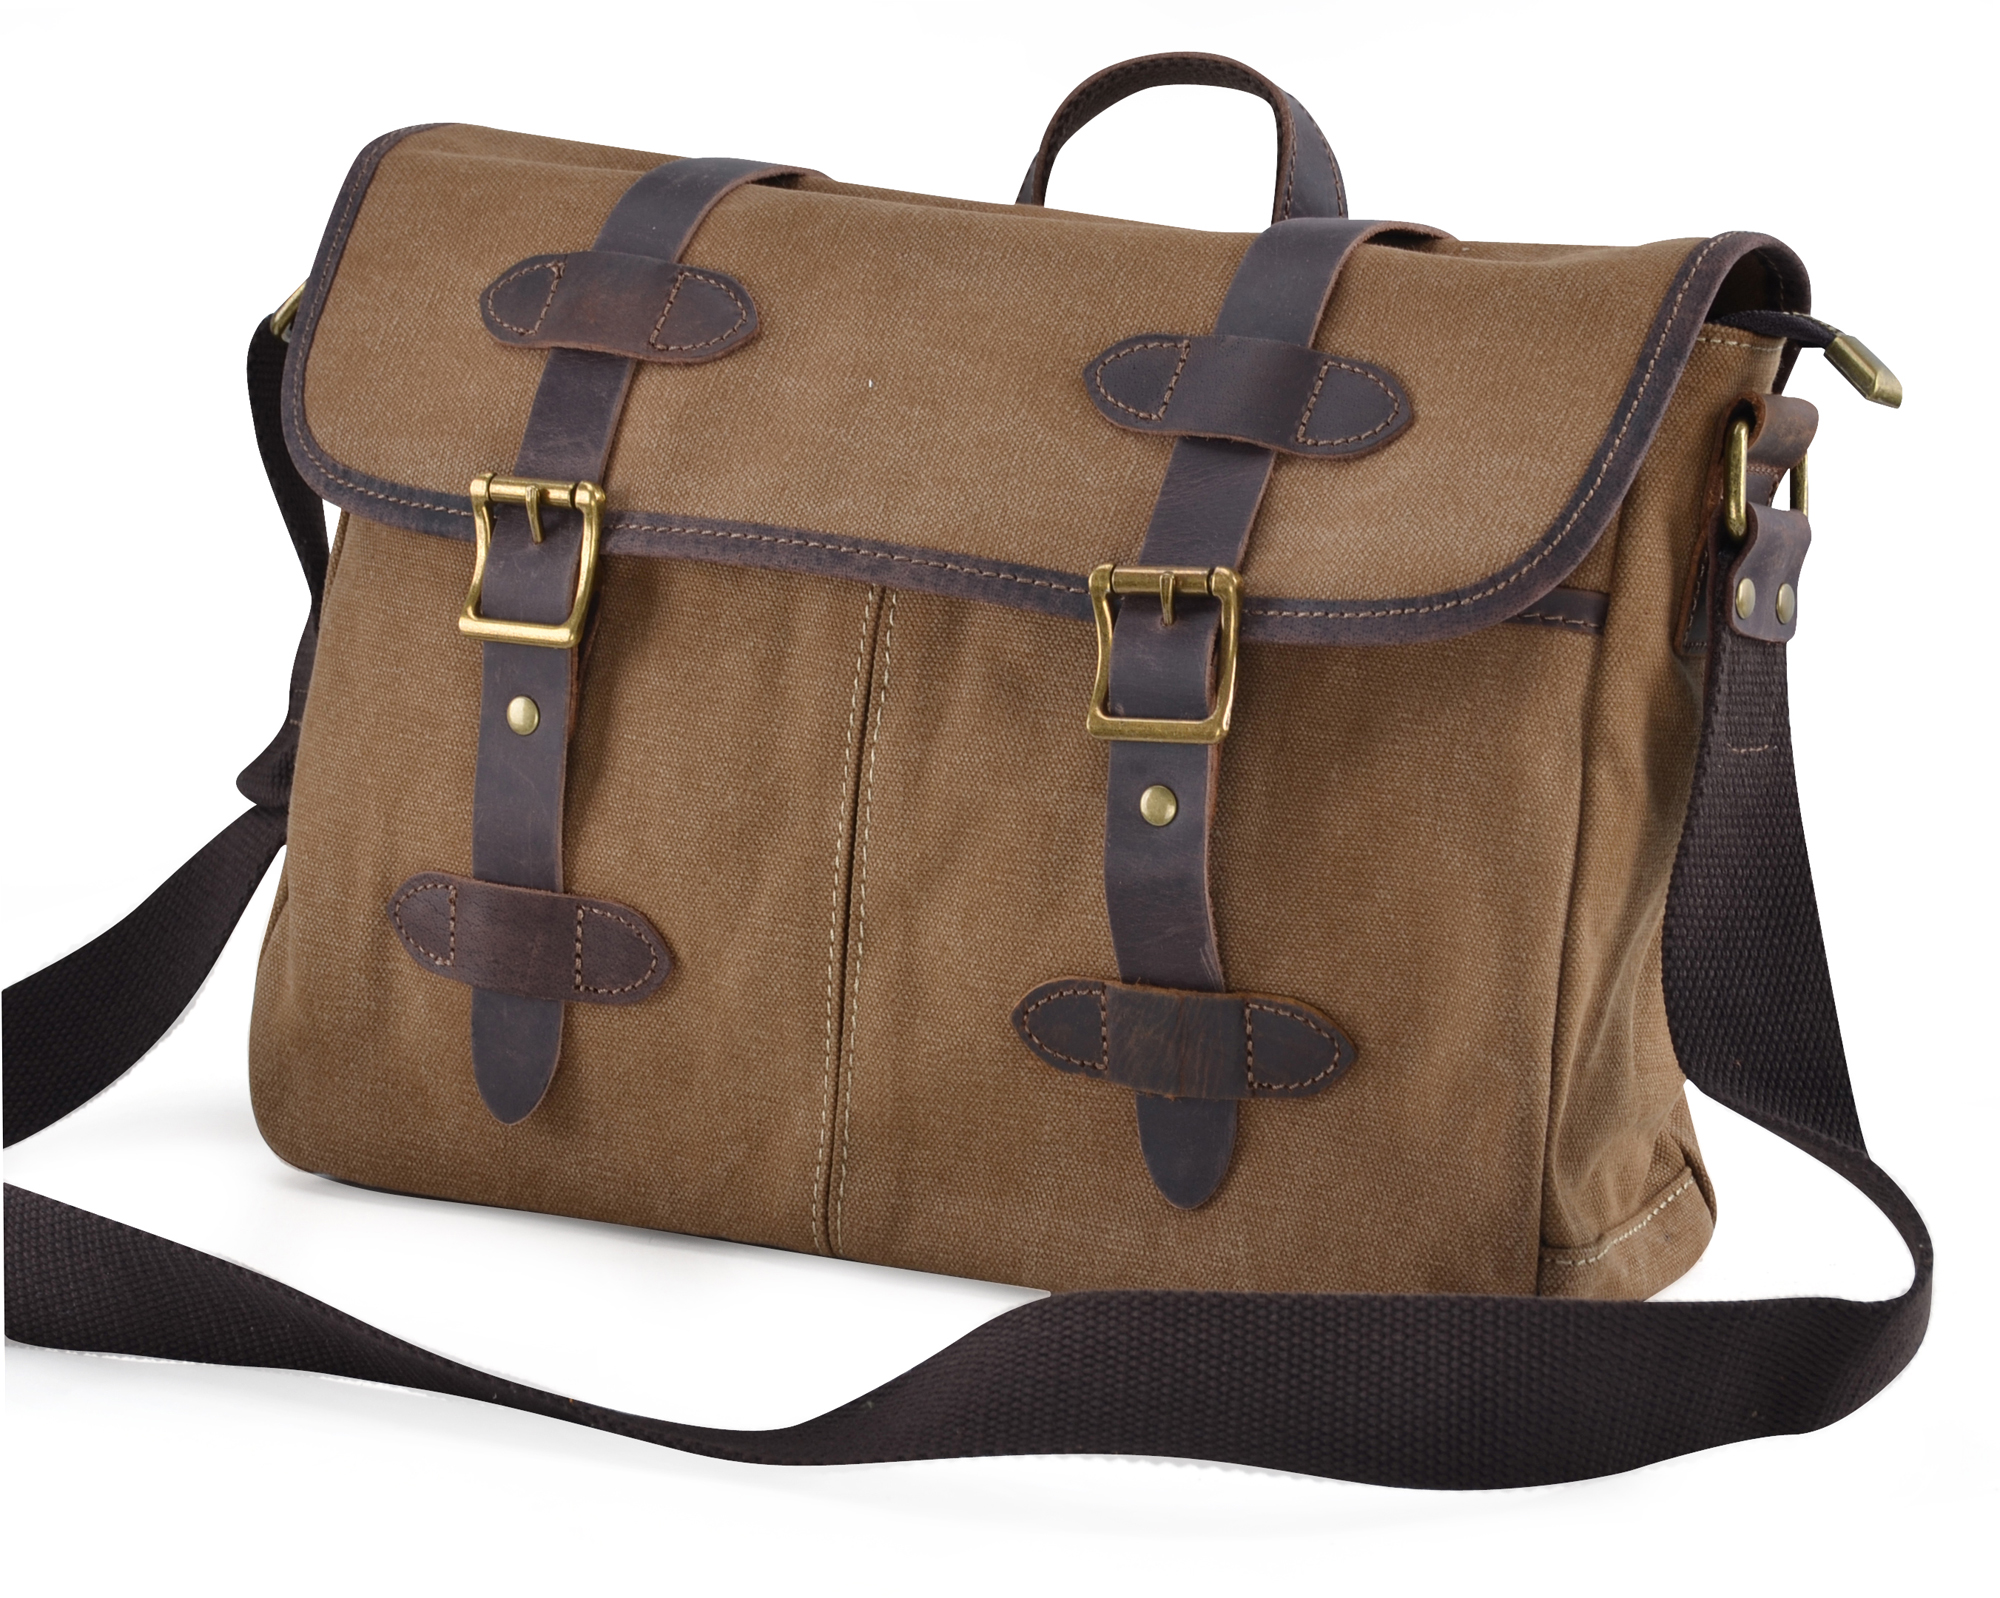 Gootium Vintage Canvas Genuine Leather Messenger Bag Cross